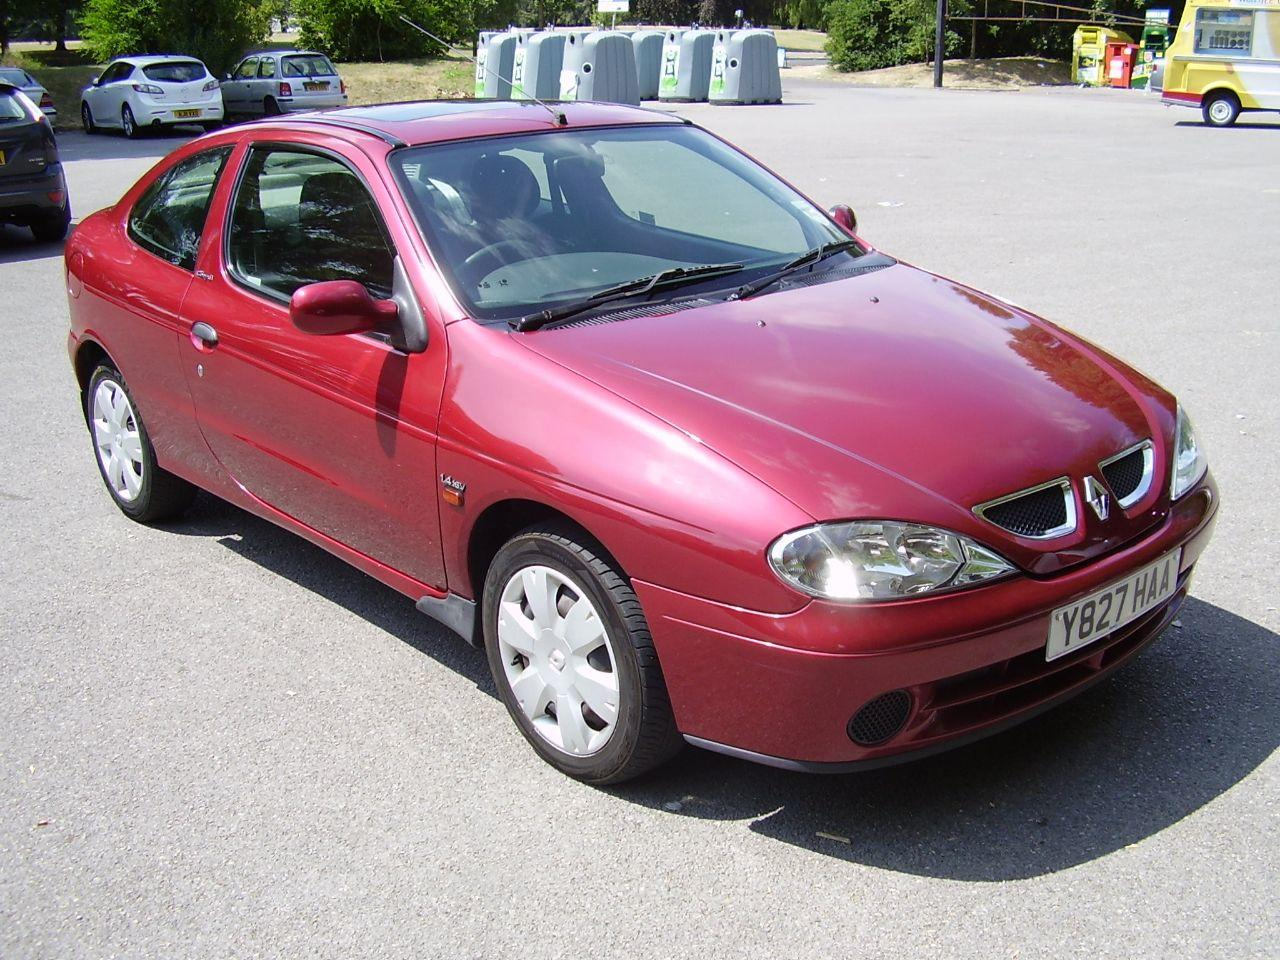 Renault Megane 1.4 EXPRESSION 16V COUPE Coupe Petrol Red